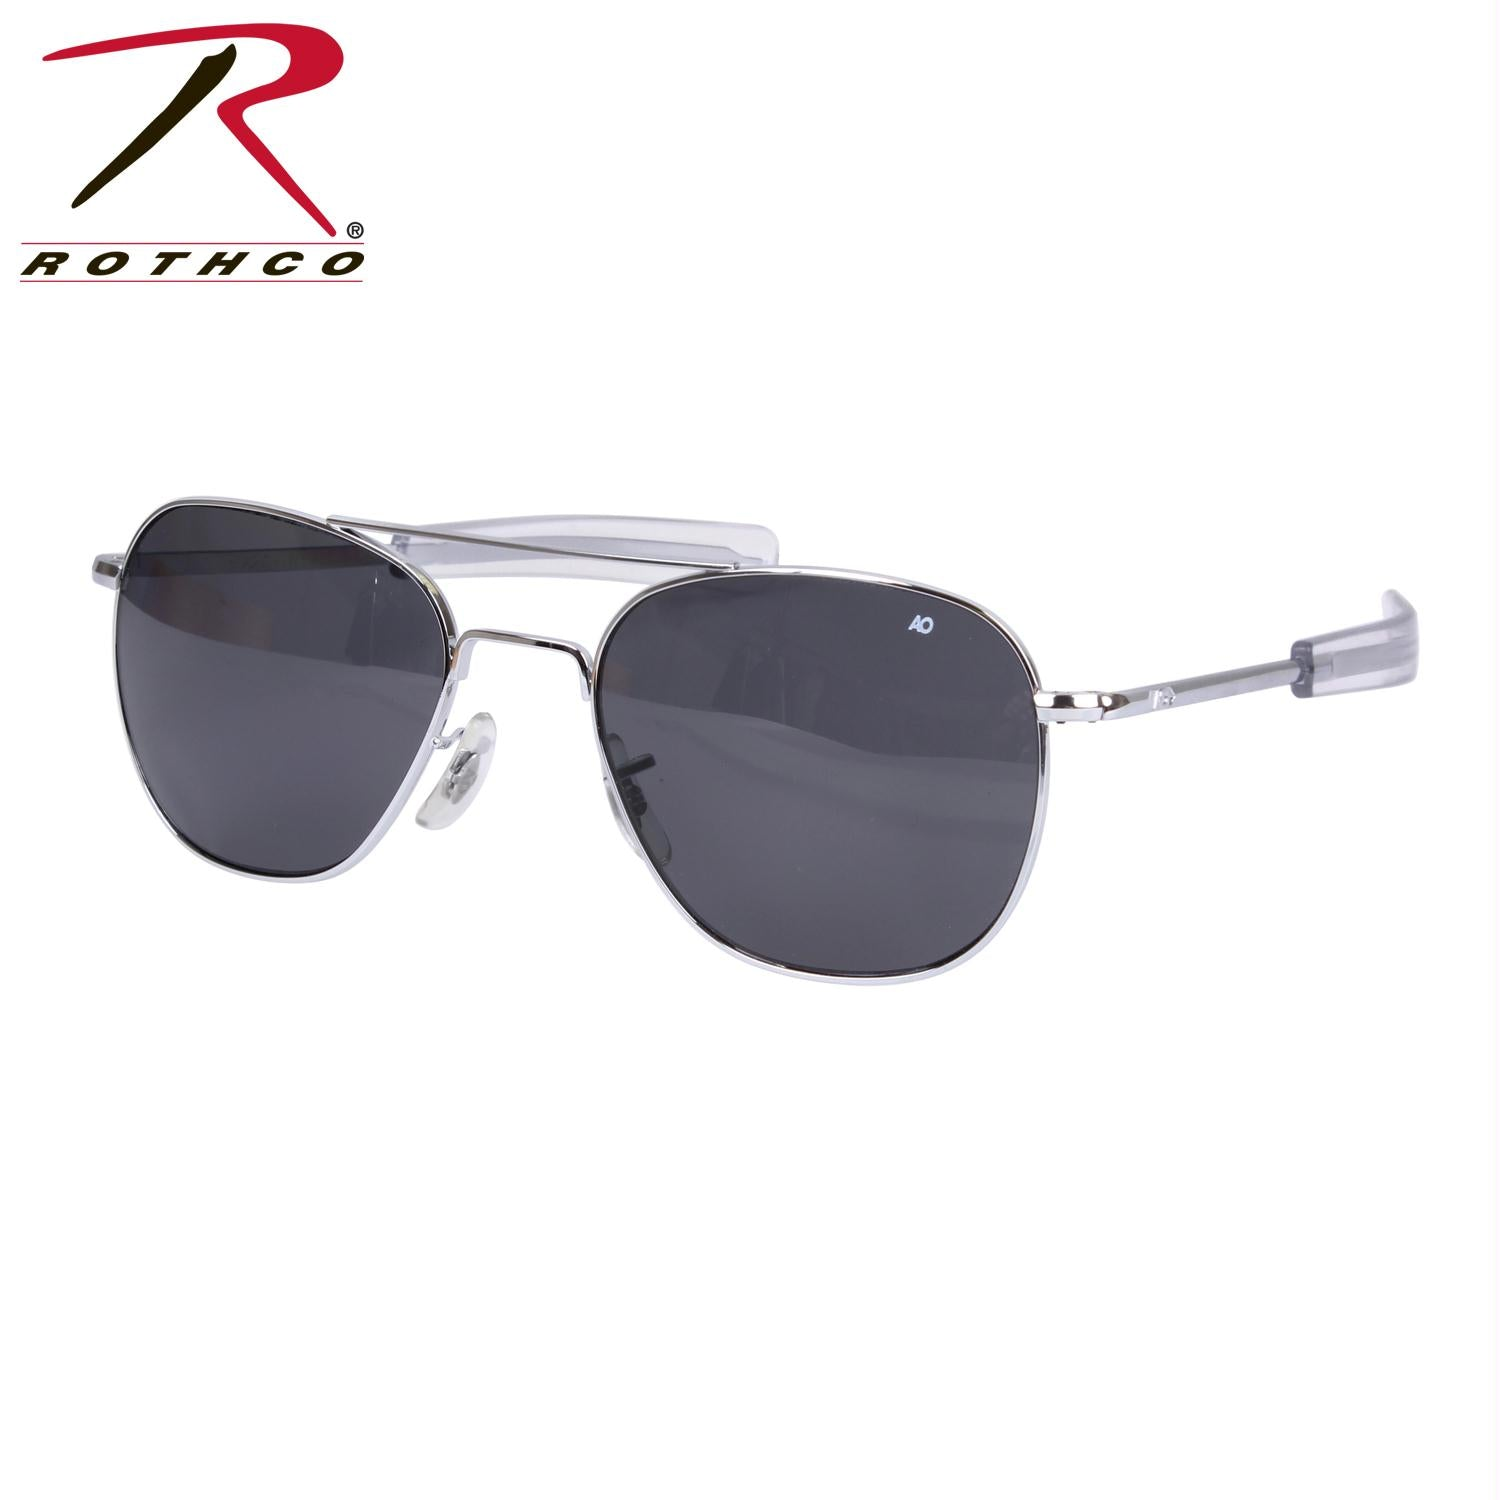 America Optical 55MM Polarized Pilot Sunglasses - Chrome